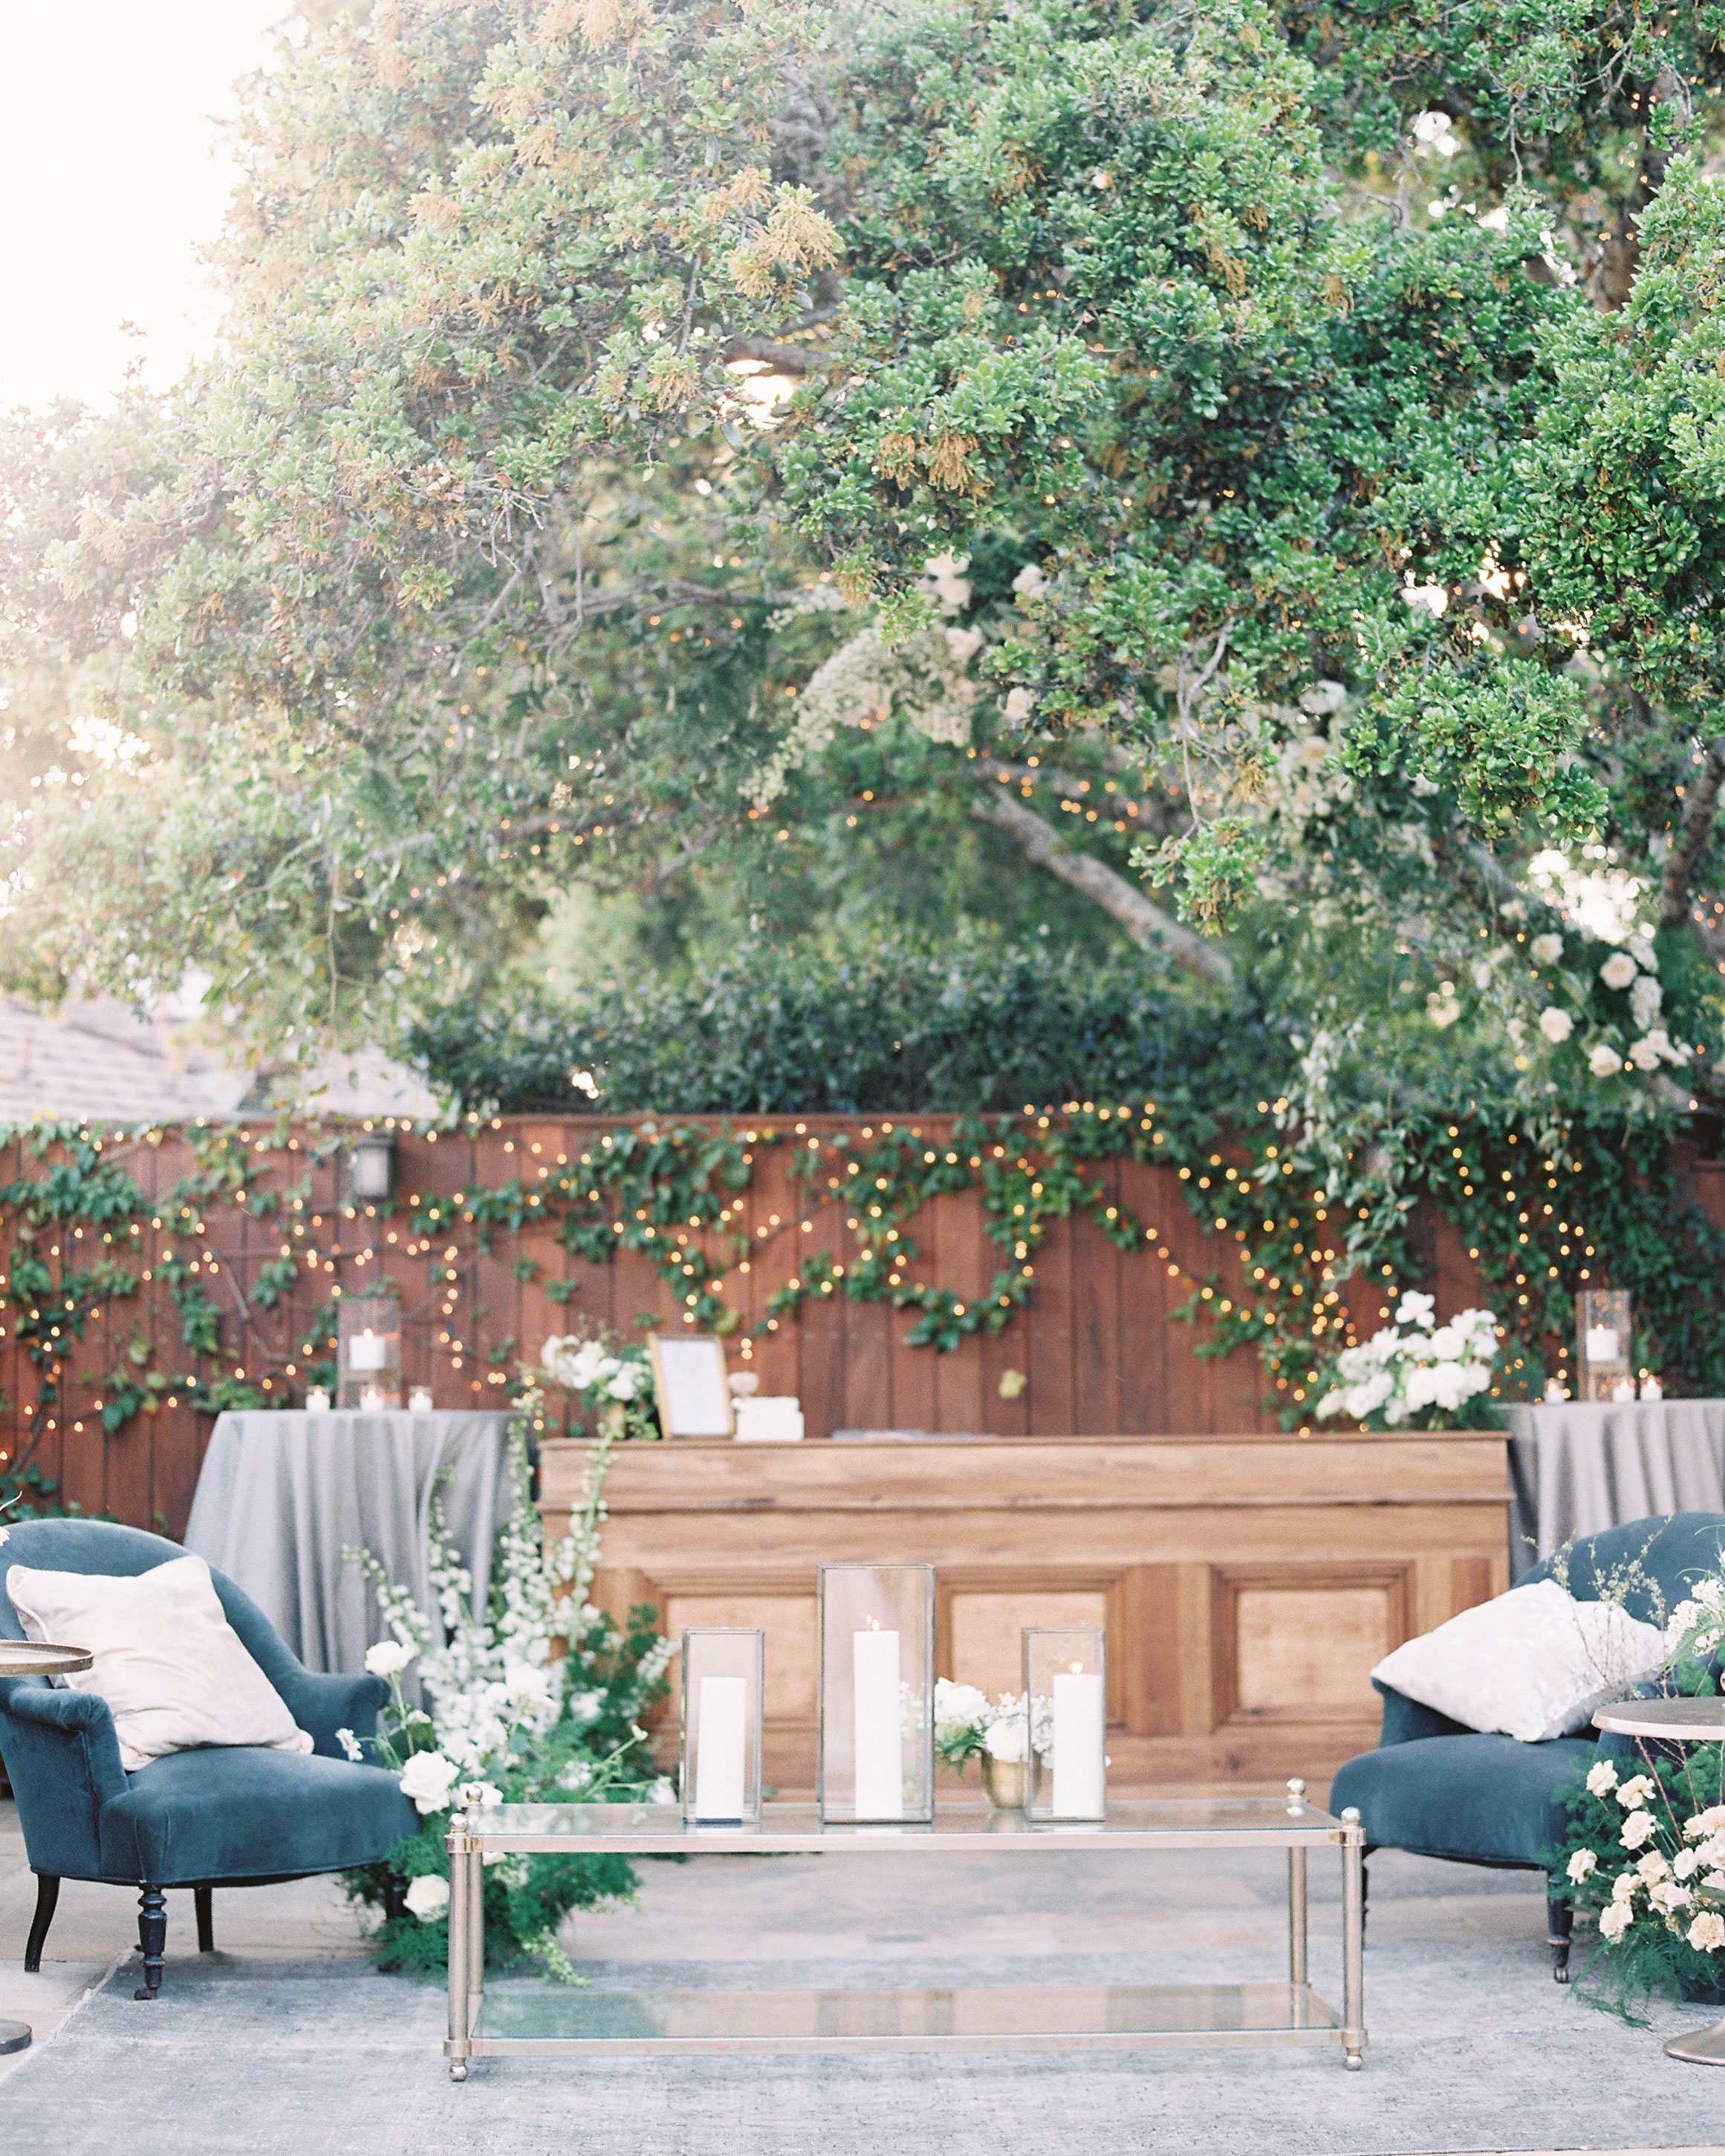 outdoor wedding lounge with greenery decor